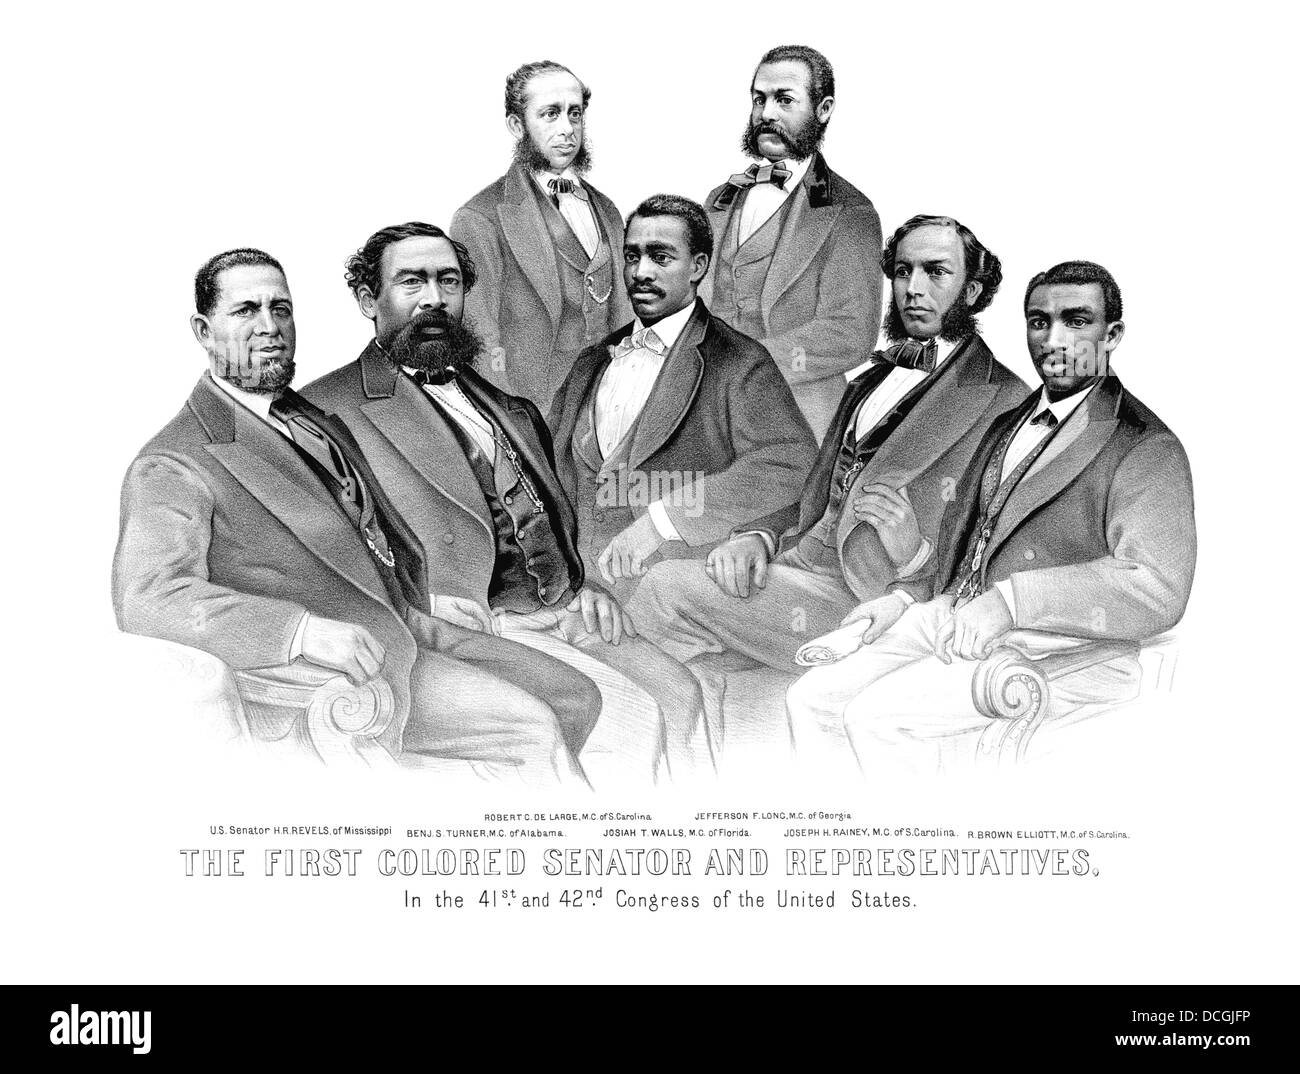 American History print of the first African American Senator and Representatives. - Stock Image